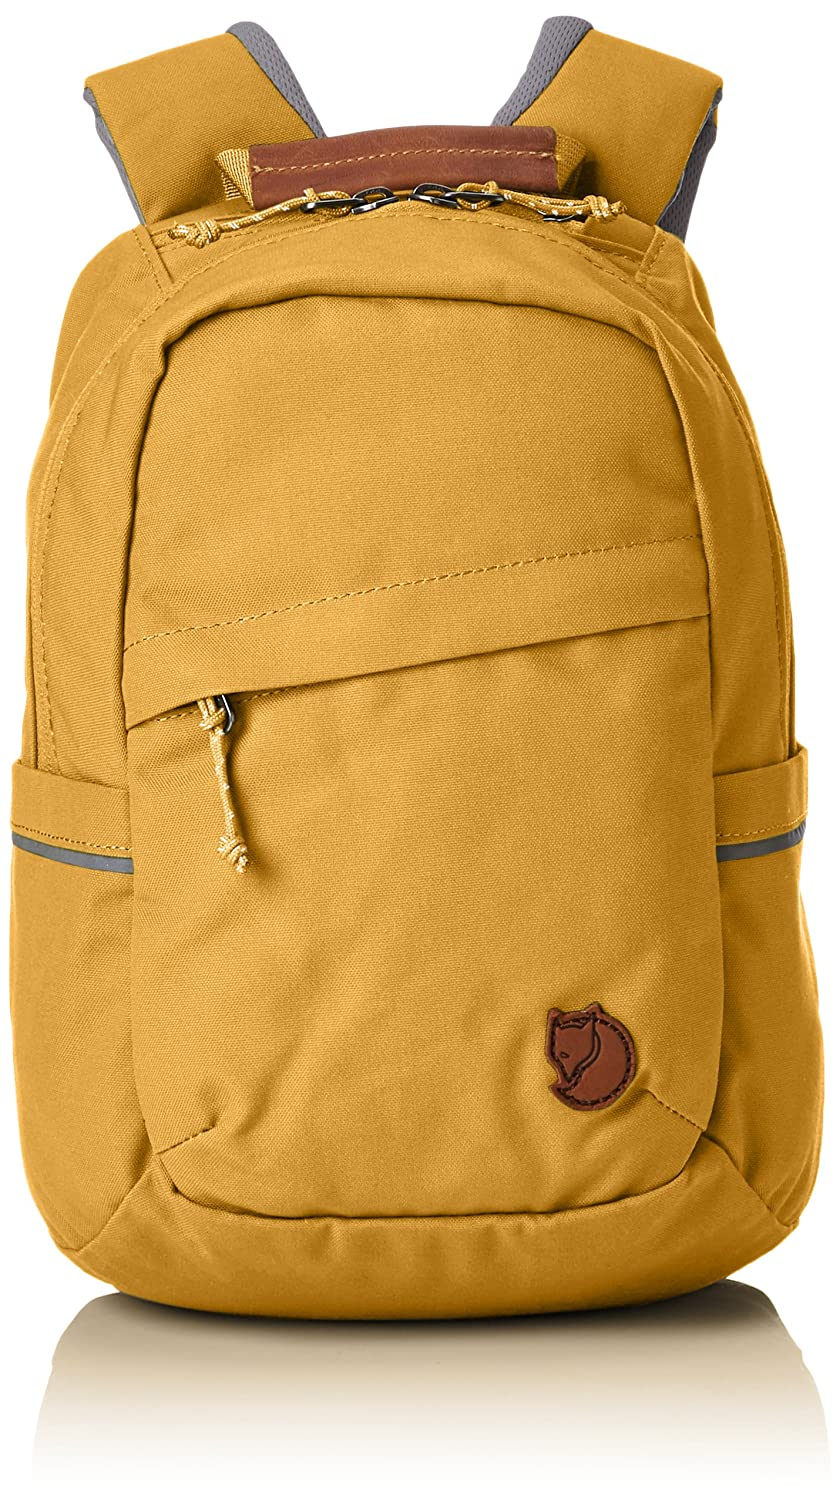 Fjallraven Raven Mini Backpack Review | Sante Blog